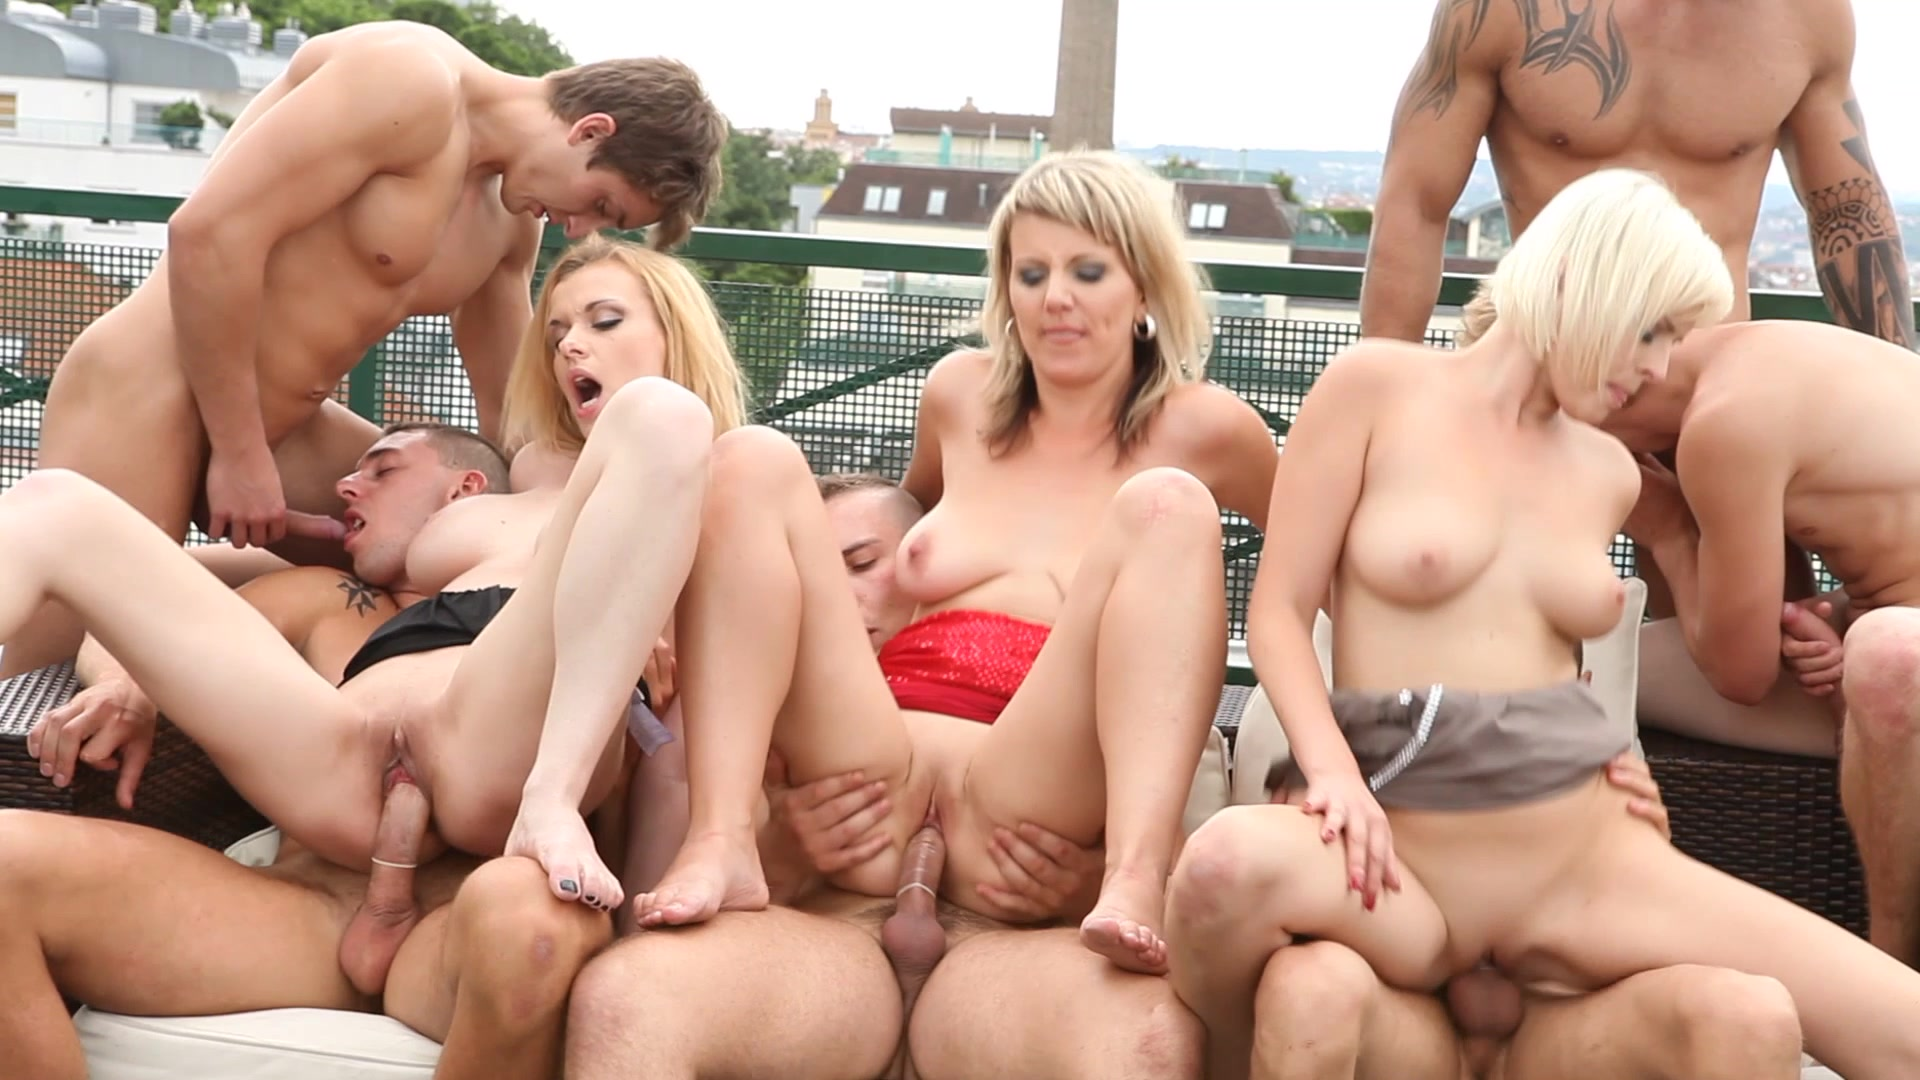 Orgy orgies hirsute sex multiple partners 6